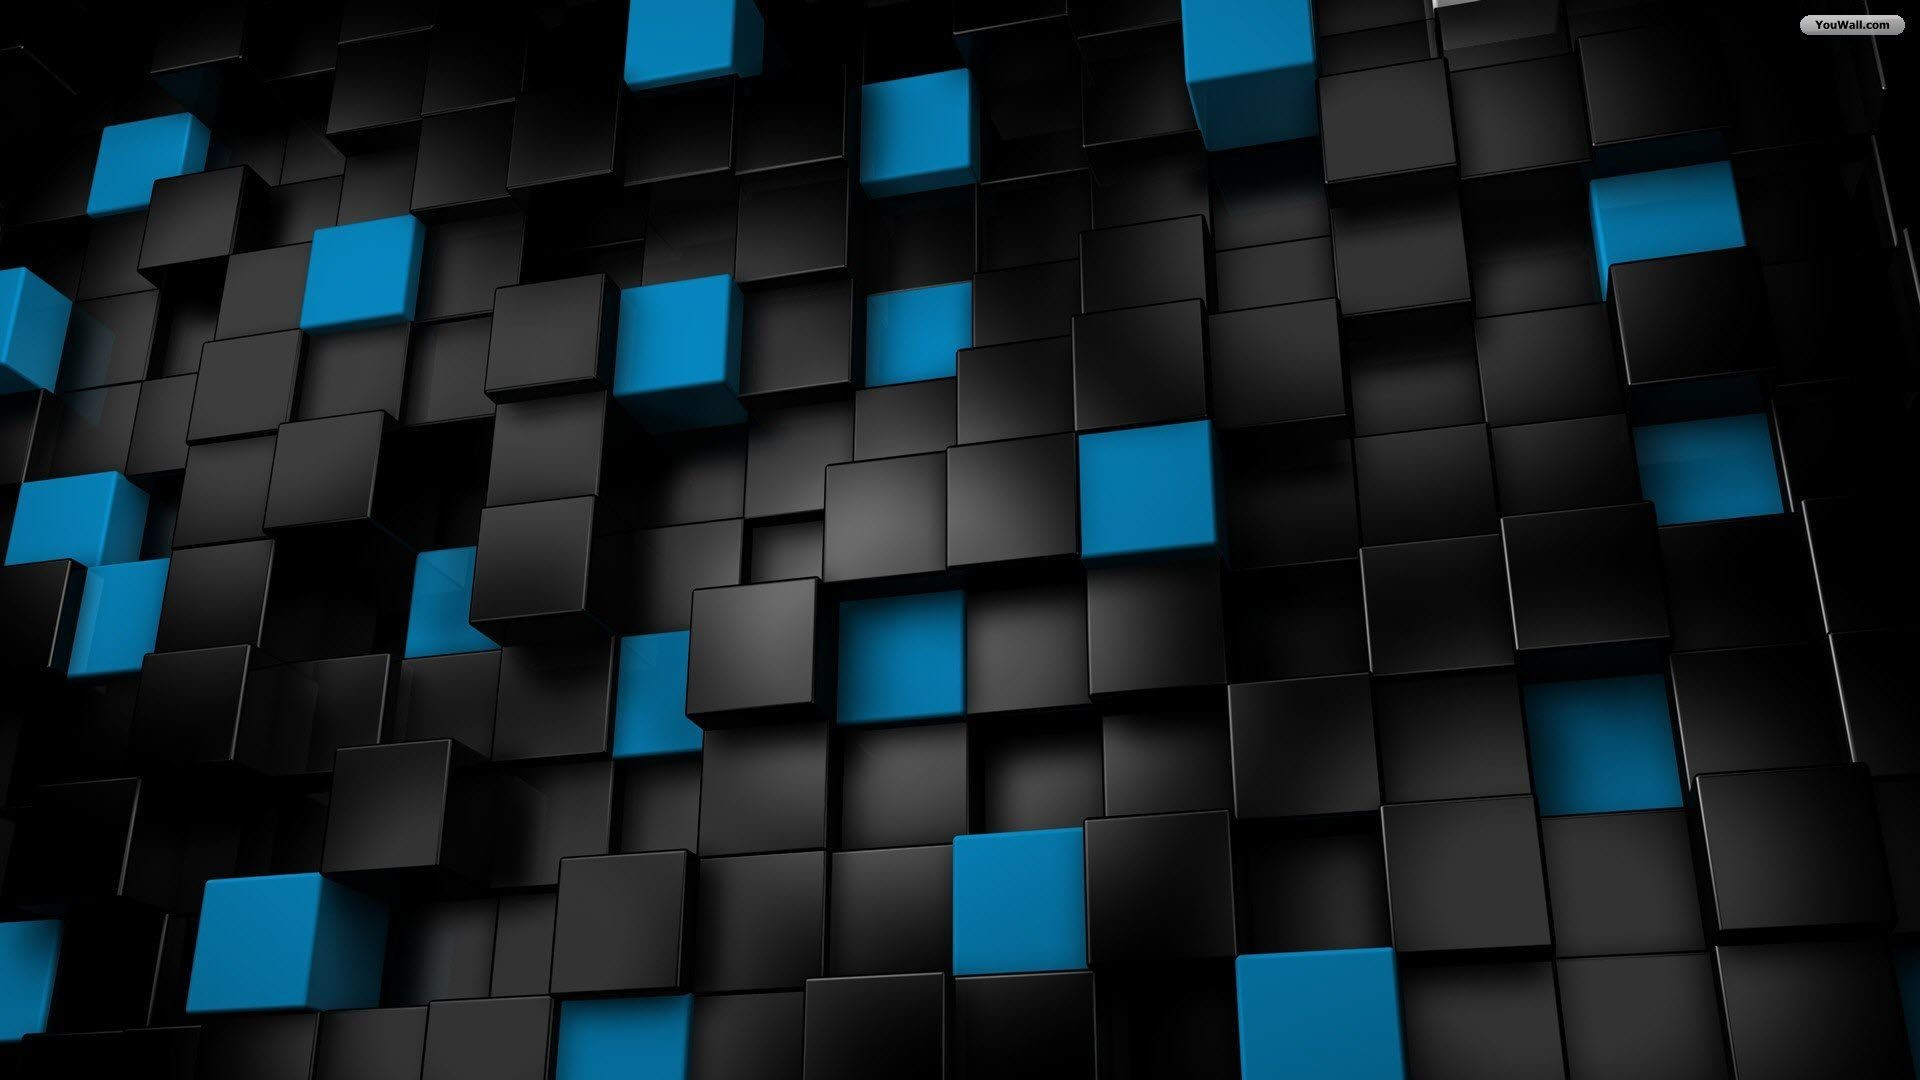 Download Black And Blue Cubes Wallpaper